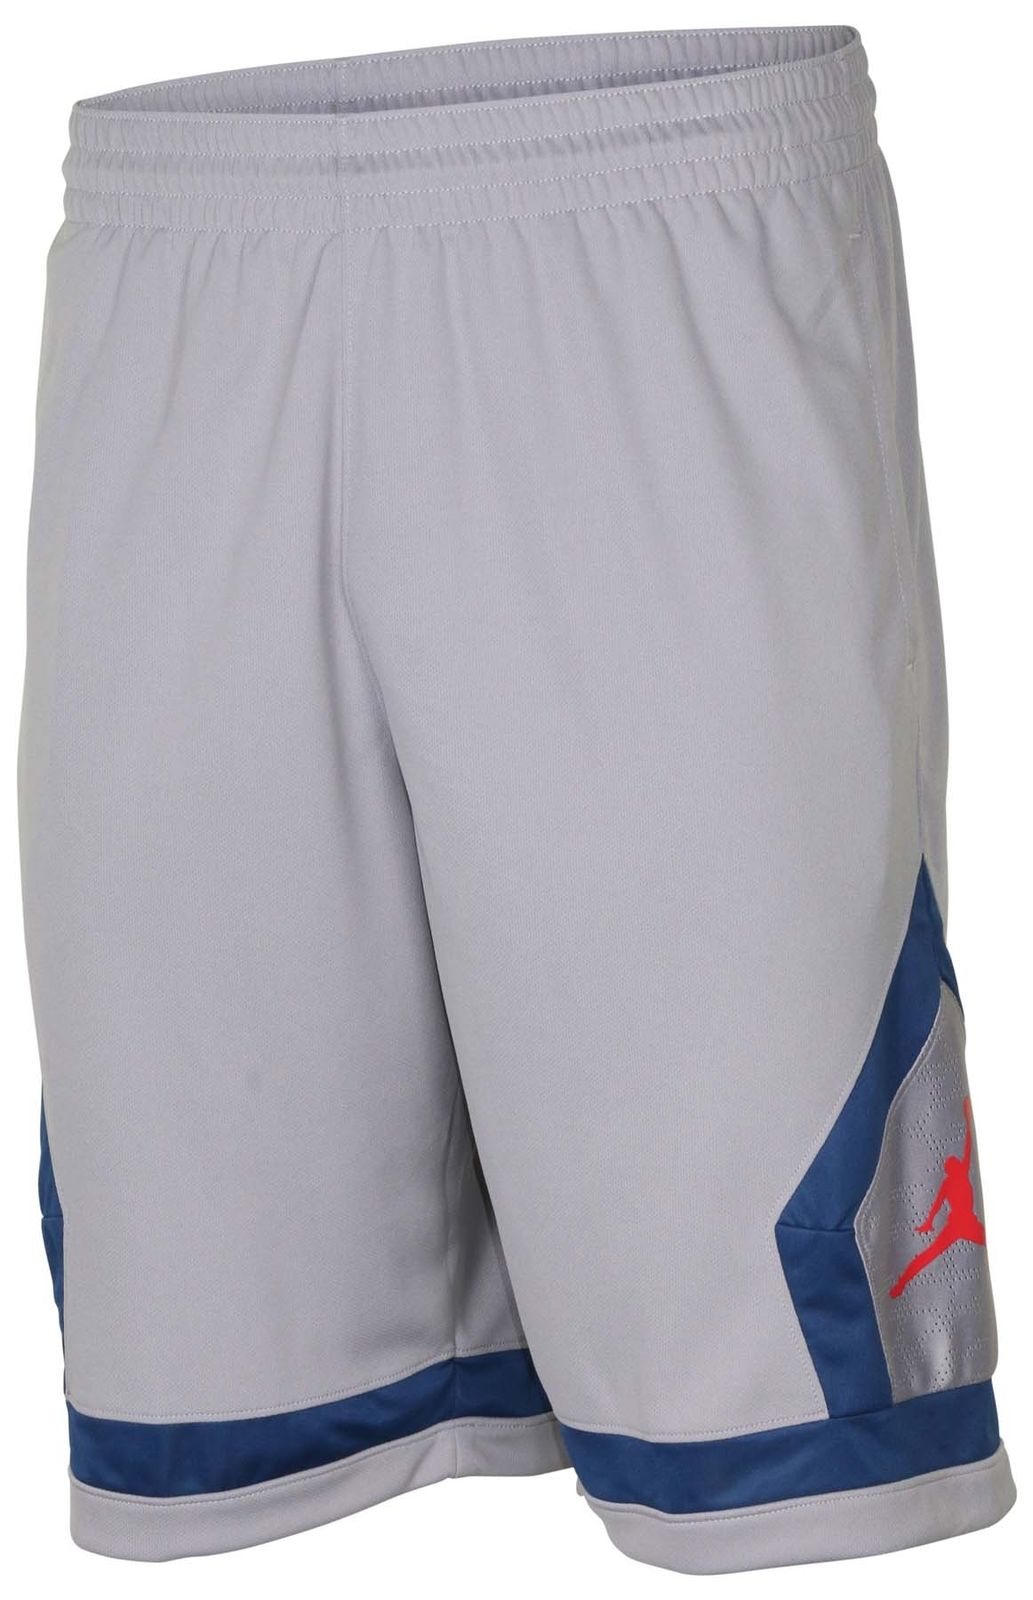 0a501596470 Nike Air Jordan Flight Diamond Men's Basketball Shorts Size S ...